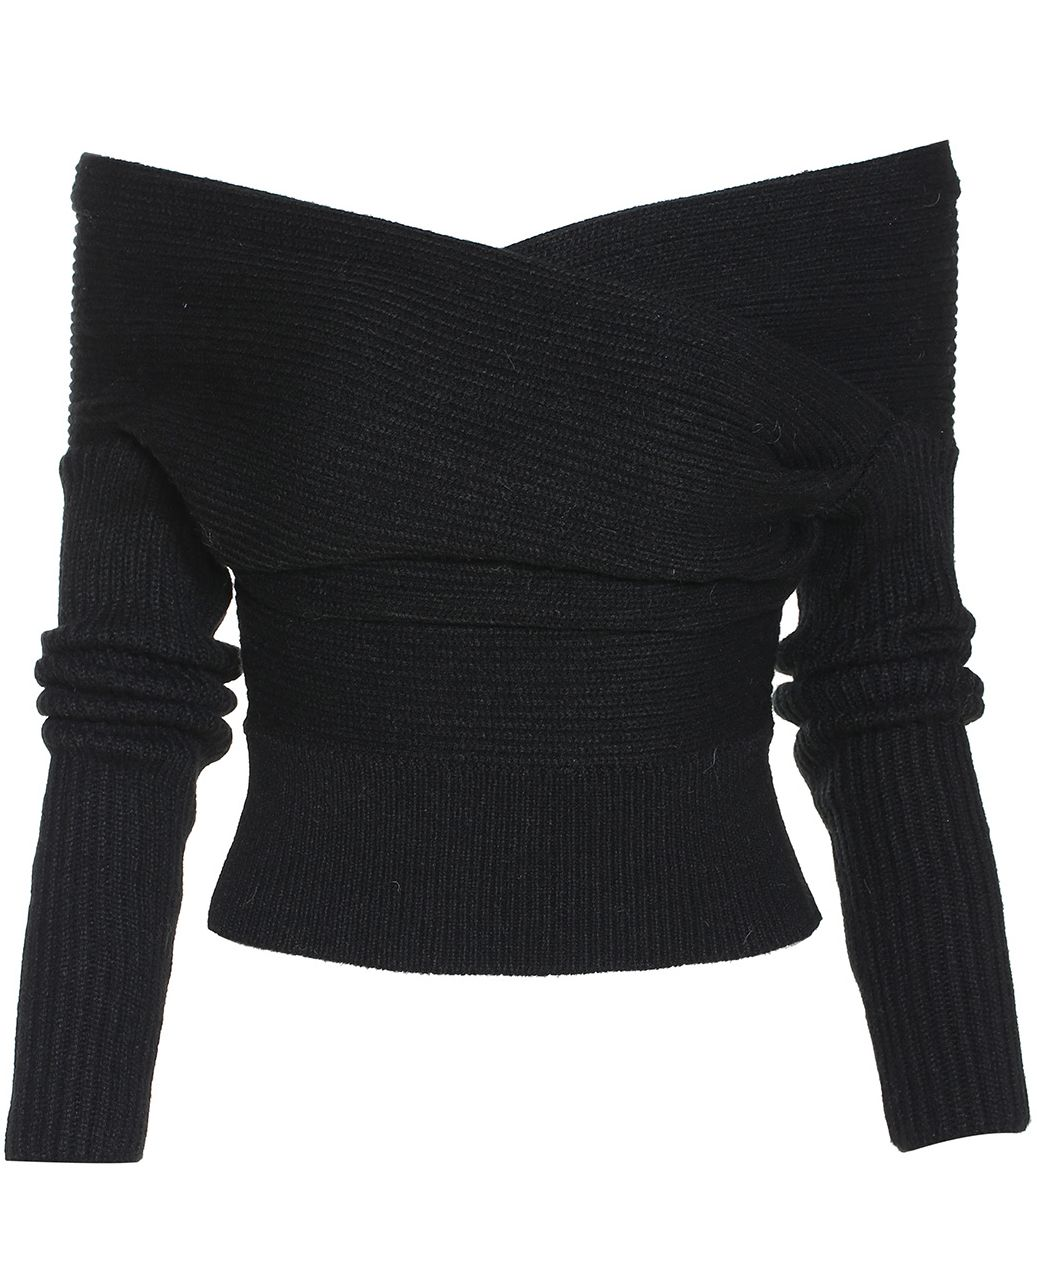 f36737257 Boat Neck Wrap Front Black Sweater